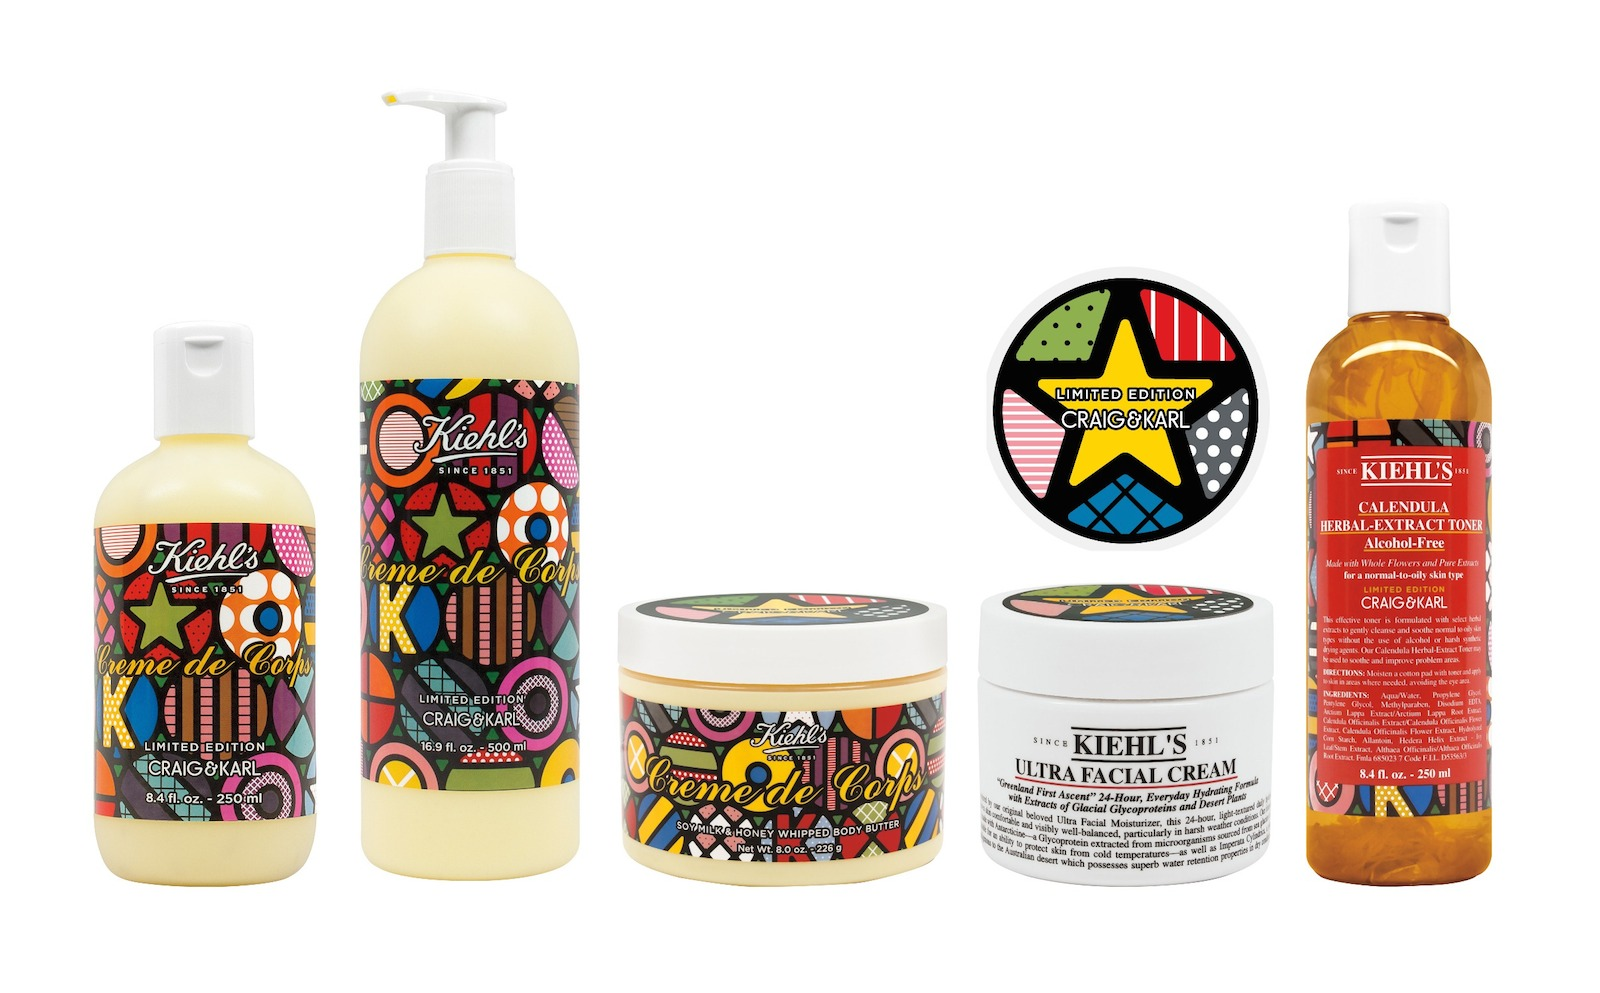 kiehls-holiday-2014-gift-set